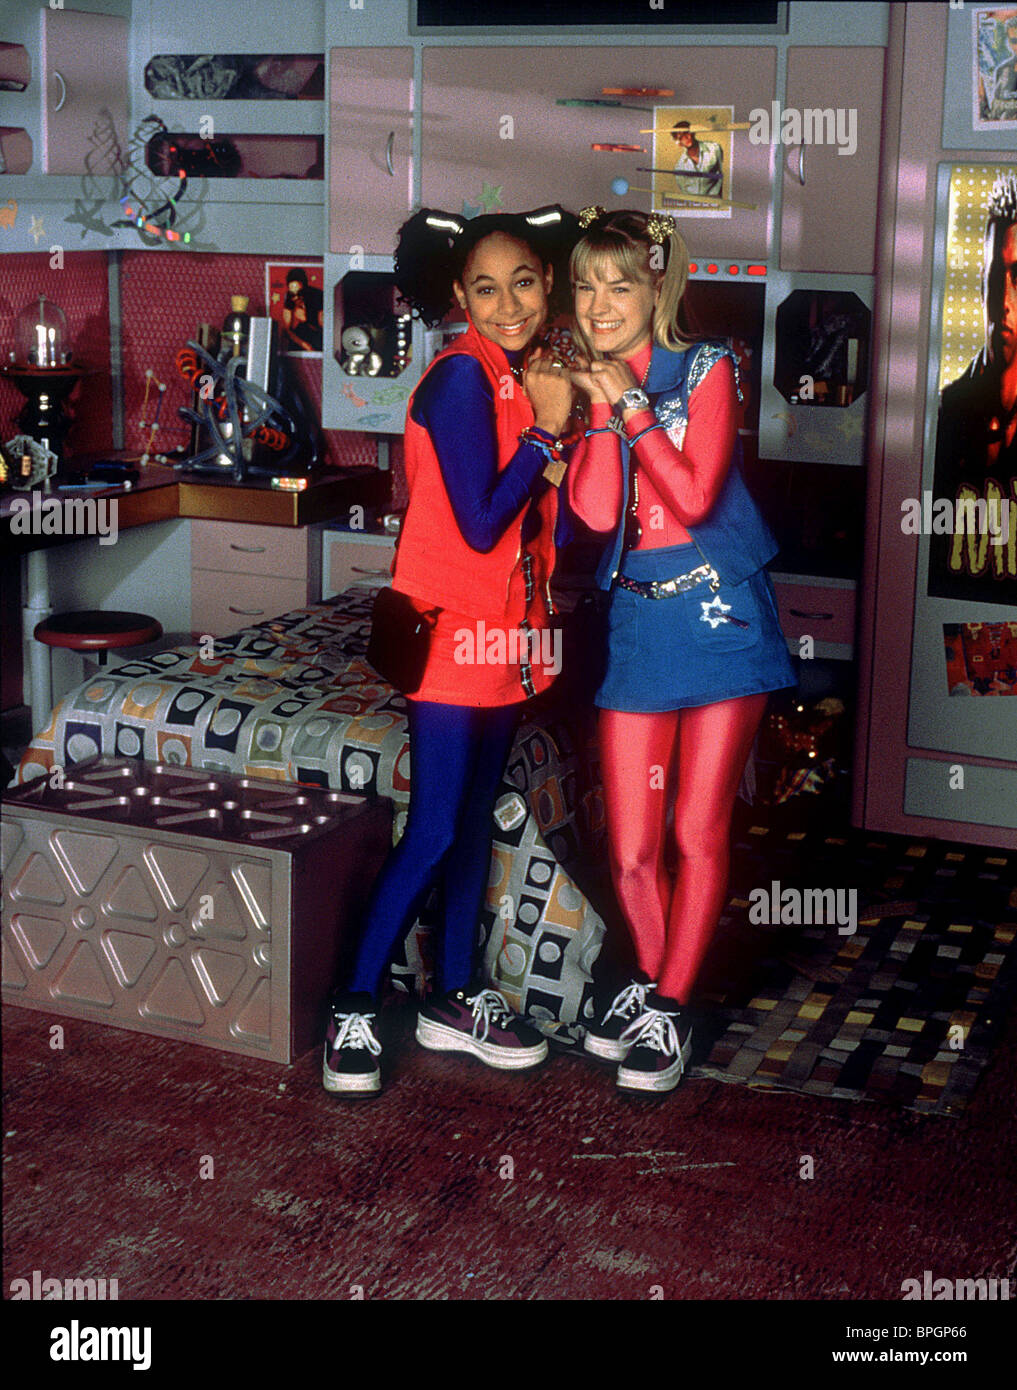 RAVEN-SYMONE & KIRSTEN STORMS ZENON: GIRL OF THE 21ST CENTURY (1999) - Stock Image